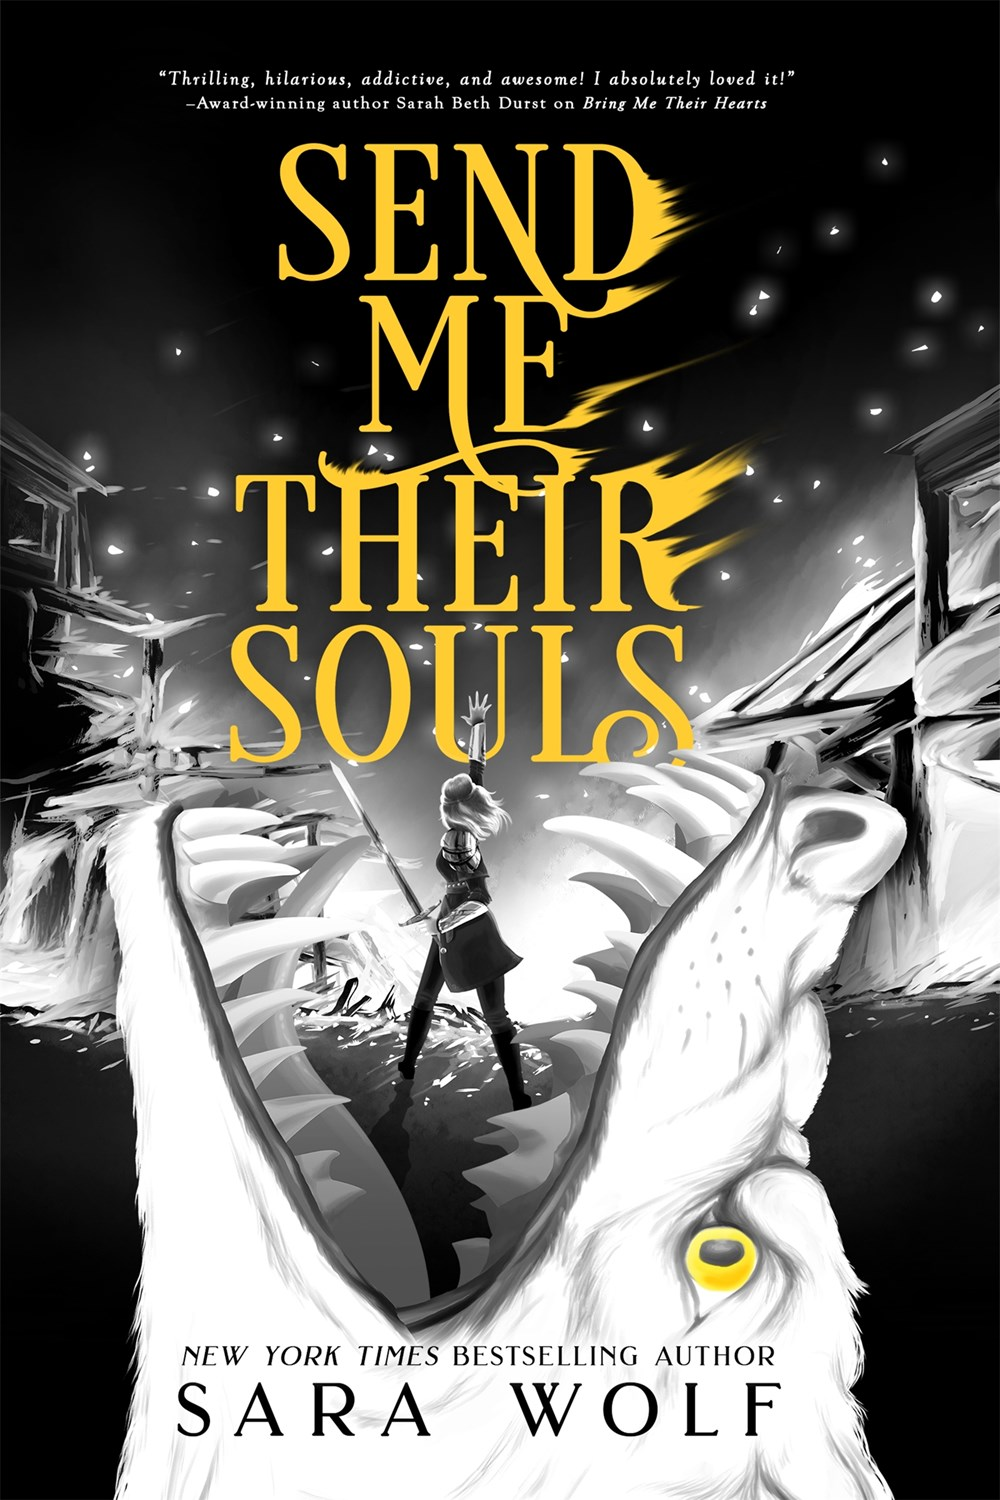 Send Me Their Souls (Bring Me Their Hearts, #3) by Sara Wolf